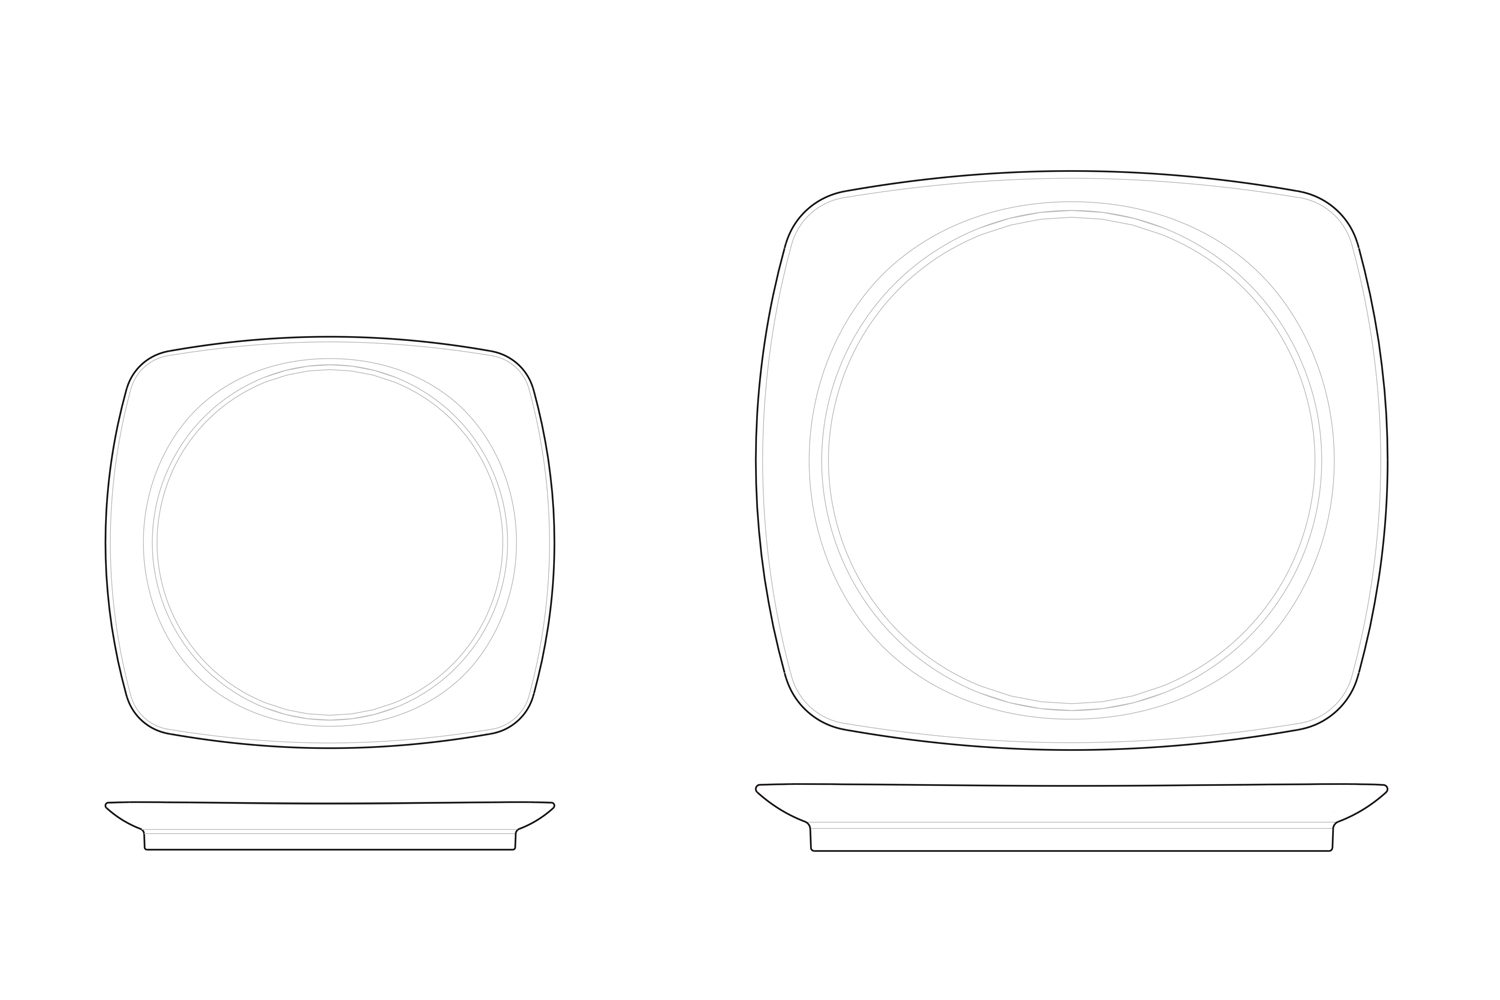 Plates drawing for Réconfort hospital tableware collection